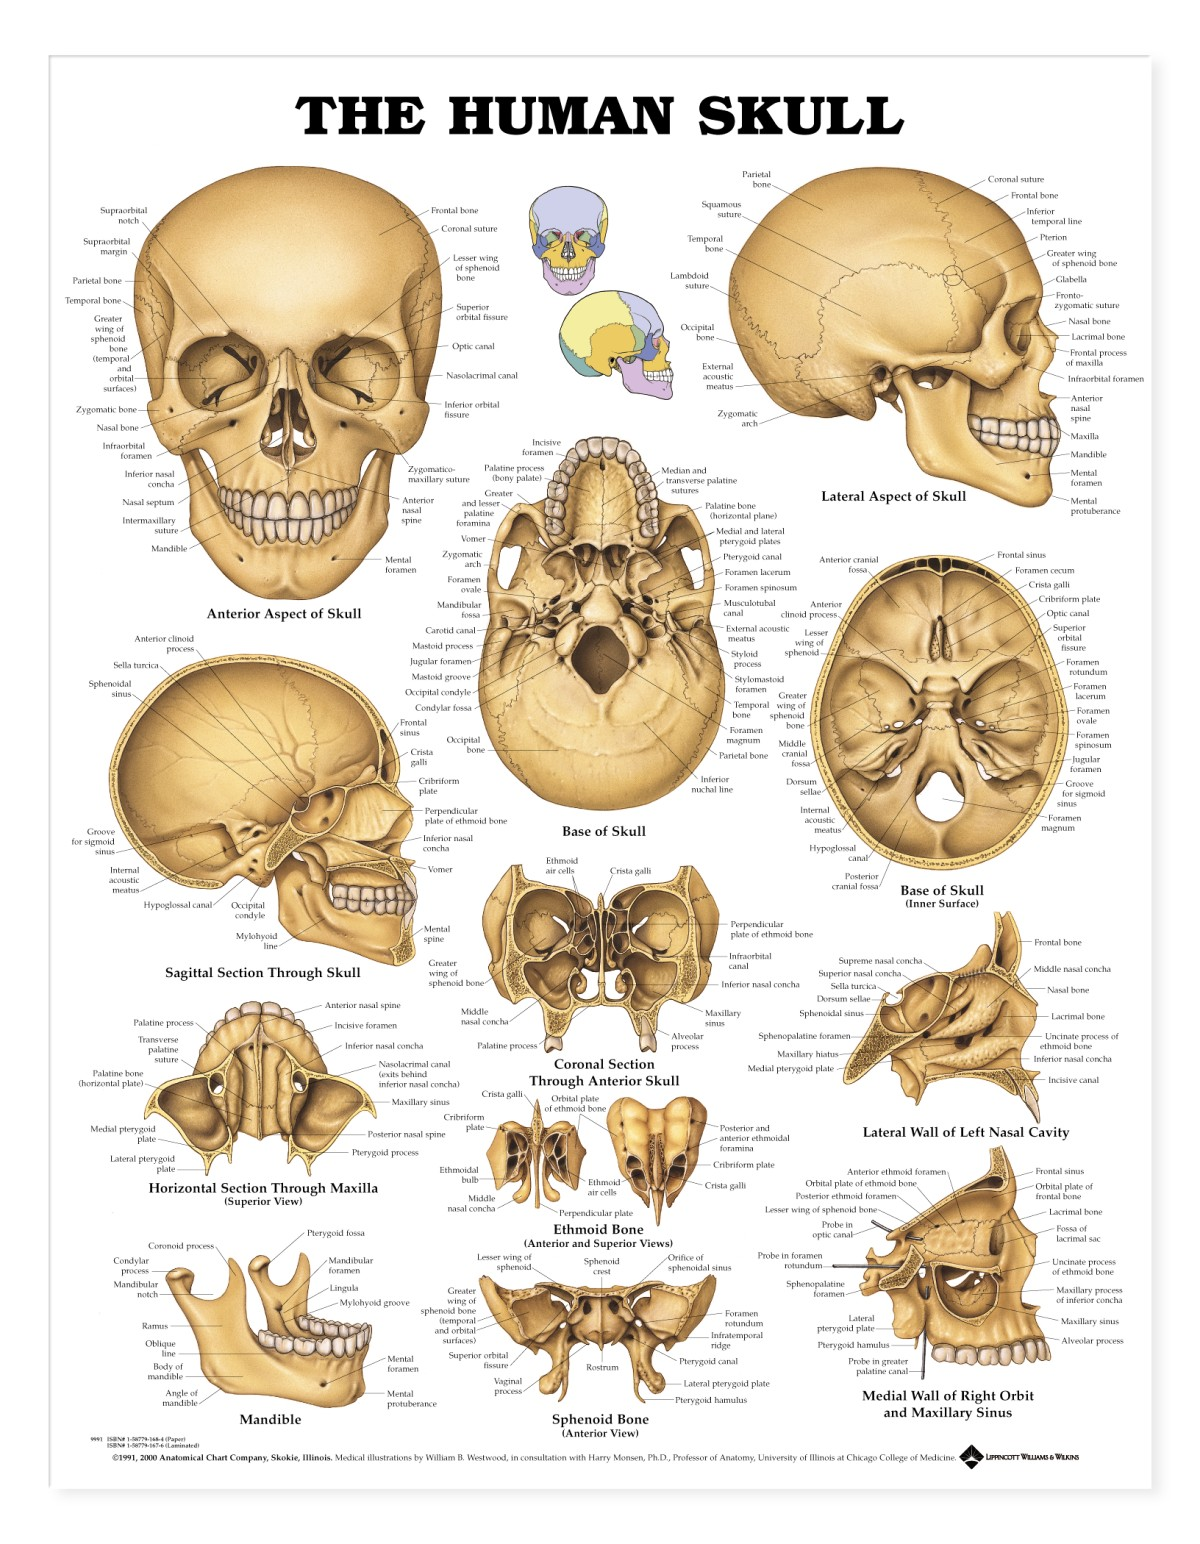 U8Skeletal moreover Hheartcolor2 in addition 8 3 The Pelvic Girdle And Pelvis also Human Anatomy Bone Markings Quiz as well 559290847449695247. on printable skull labeling exercises